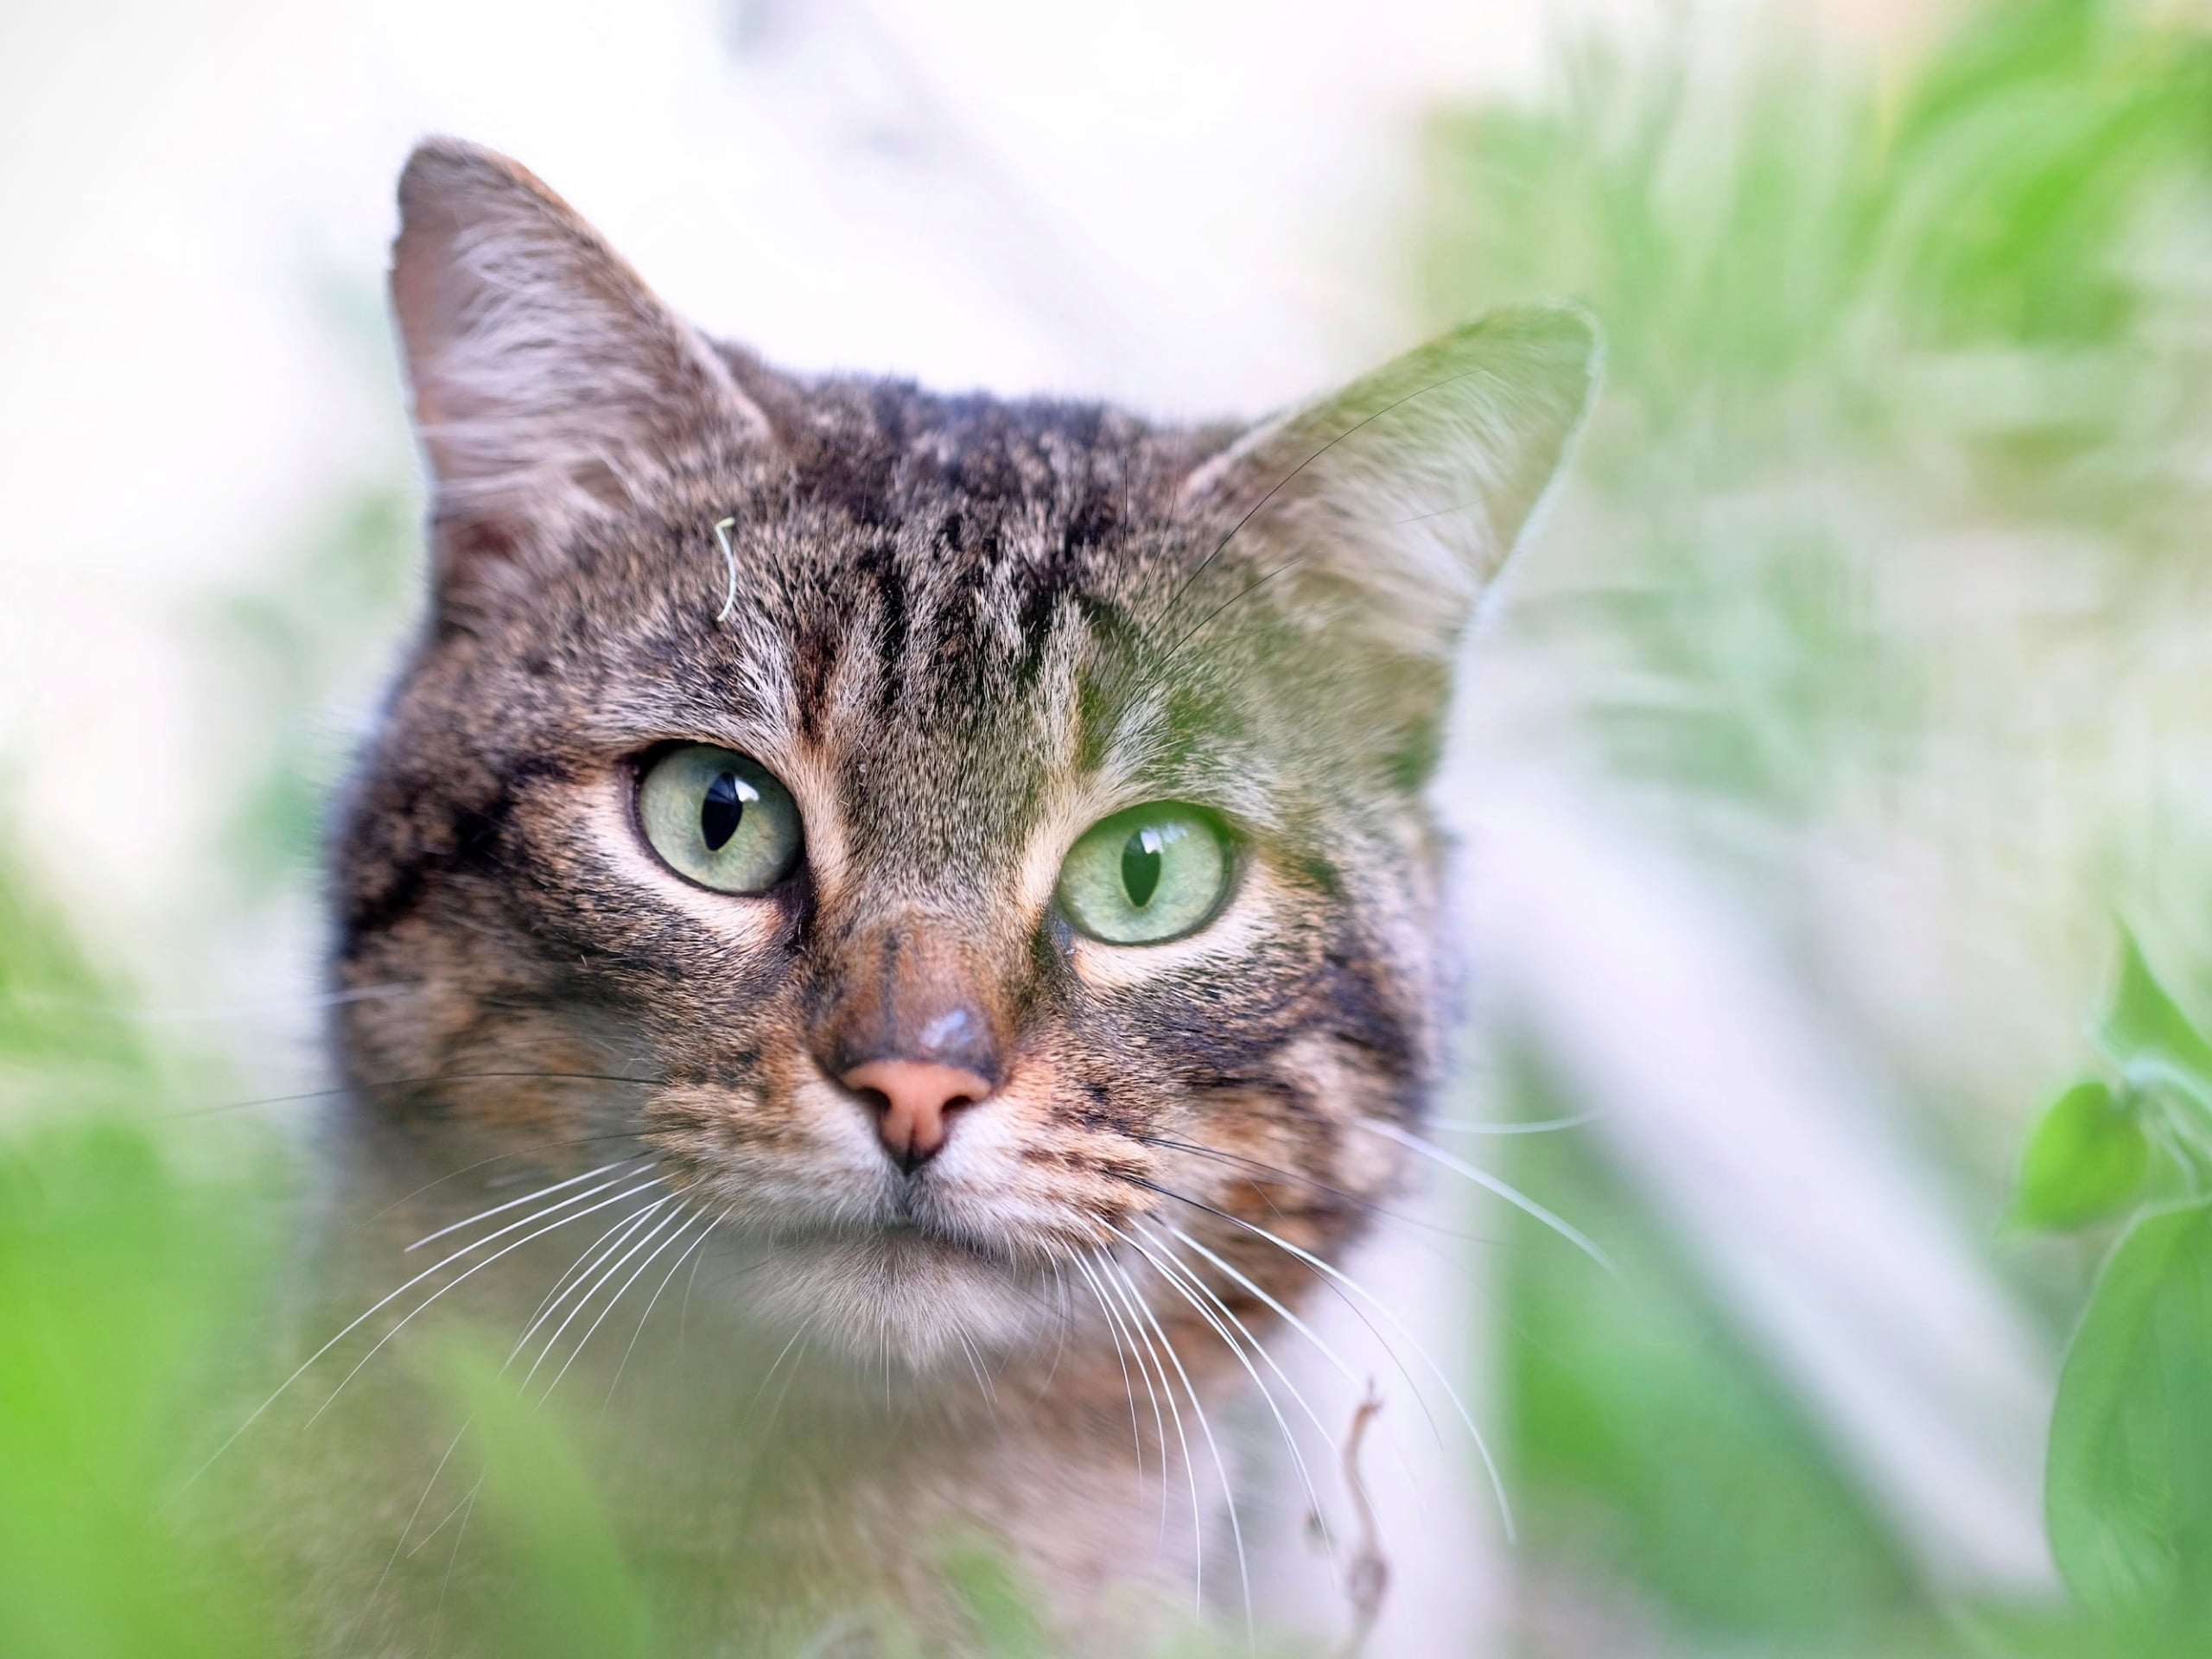 A close-up of a cat's face as it walks through several basil plants.